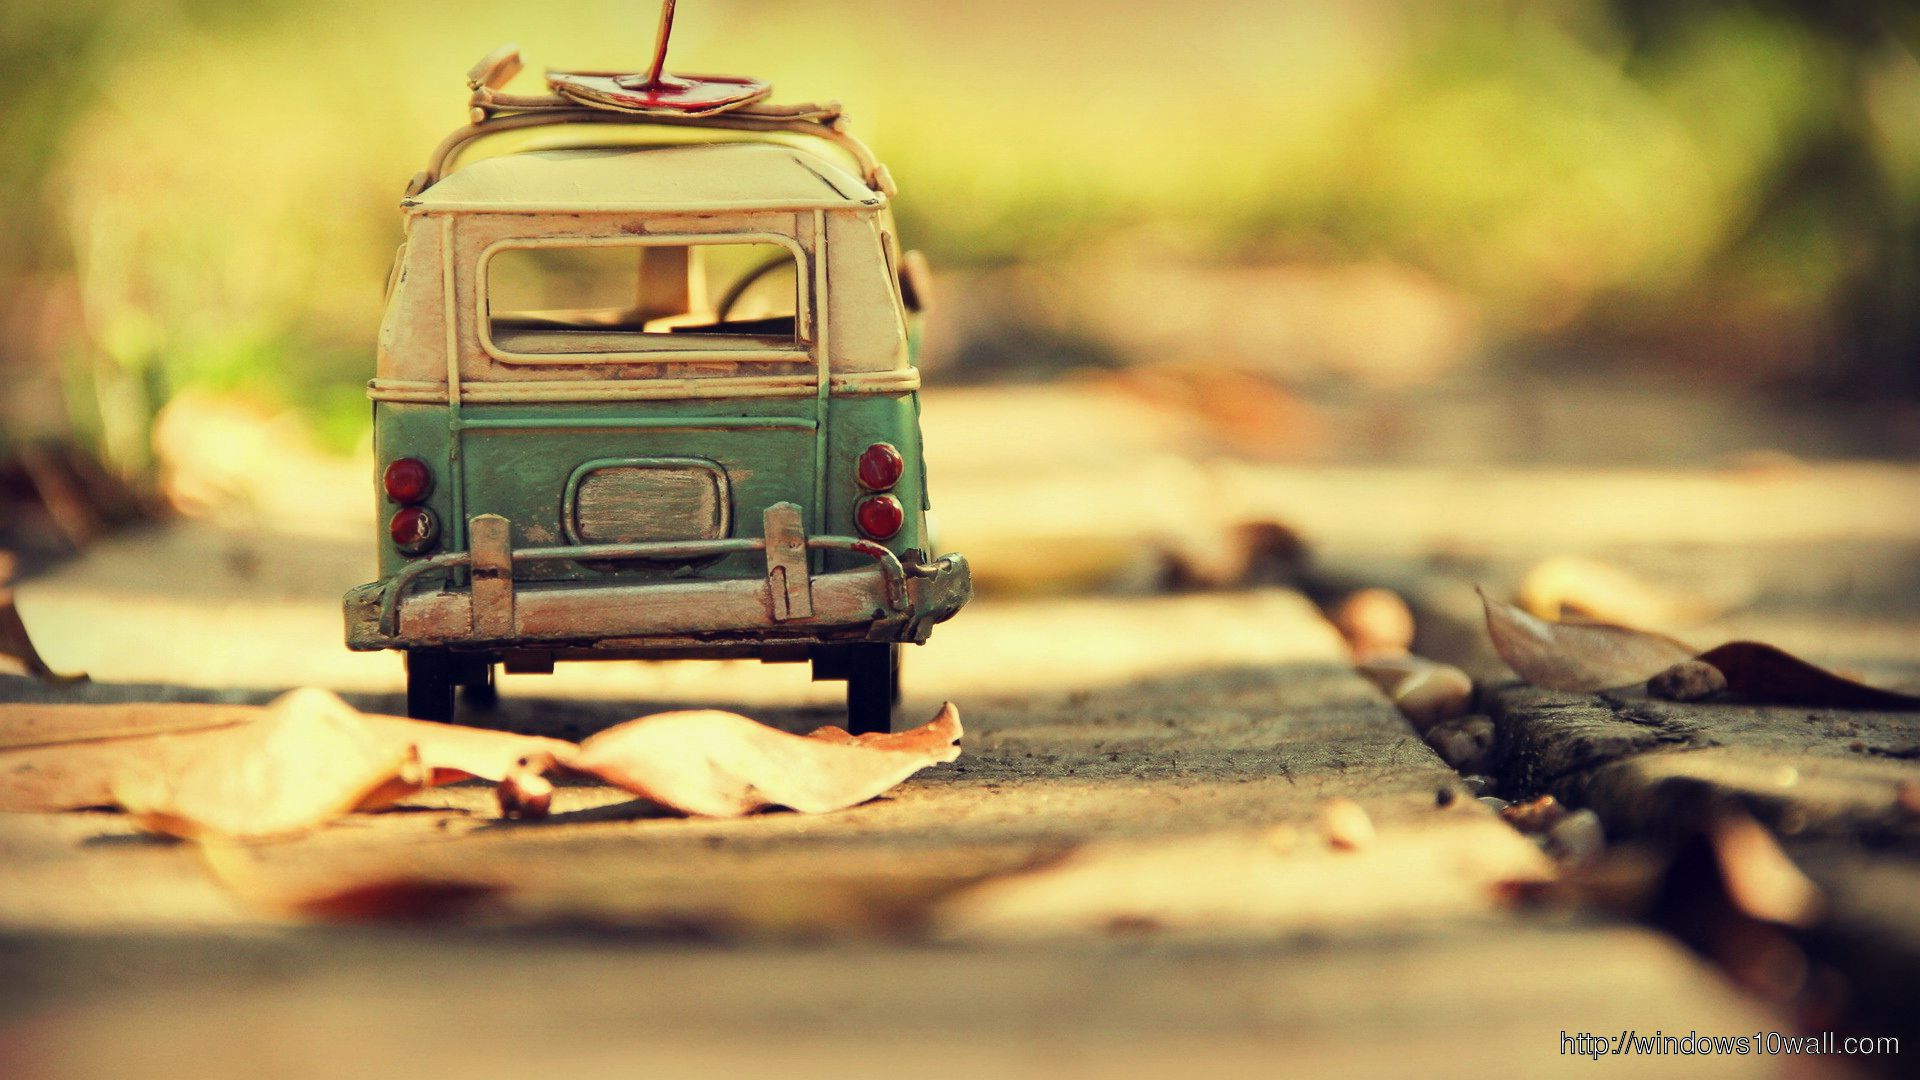 Photography-Vintage-HD-of-Toy-Blue-White-VW-Bus-Wallpaper